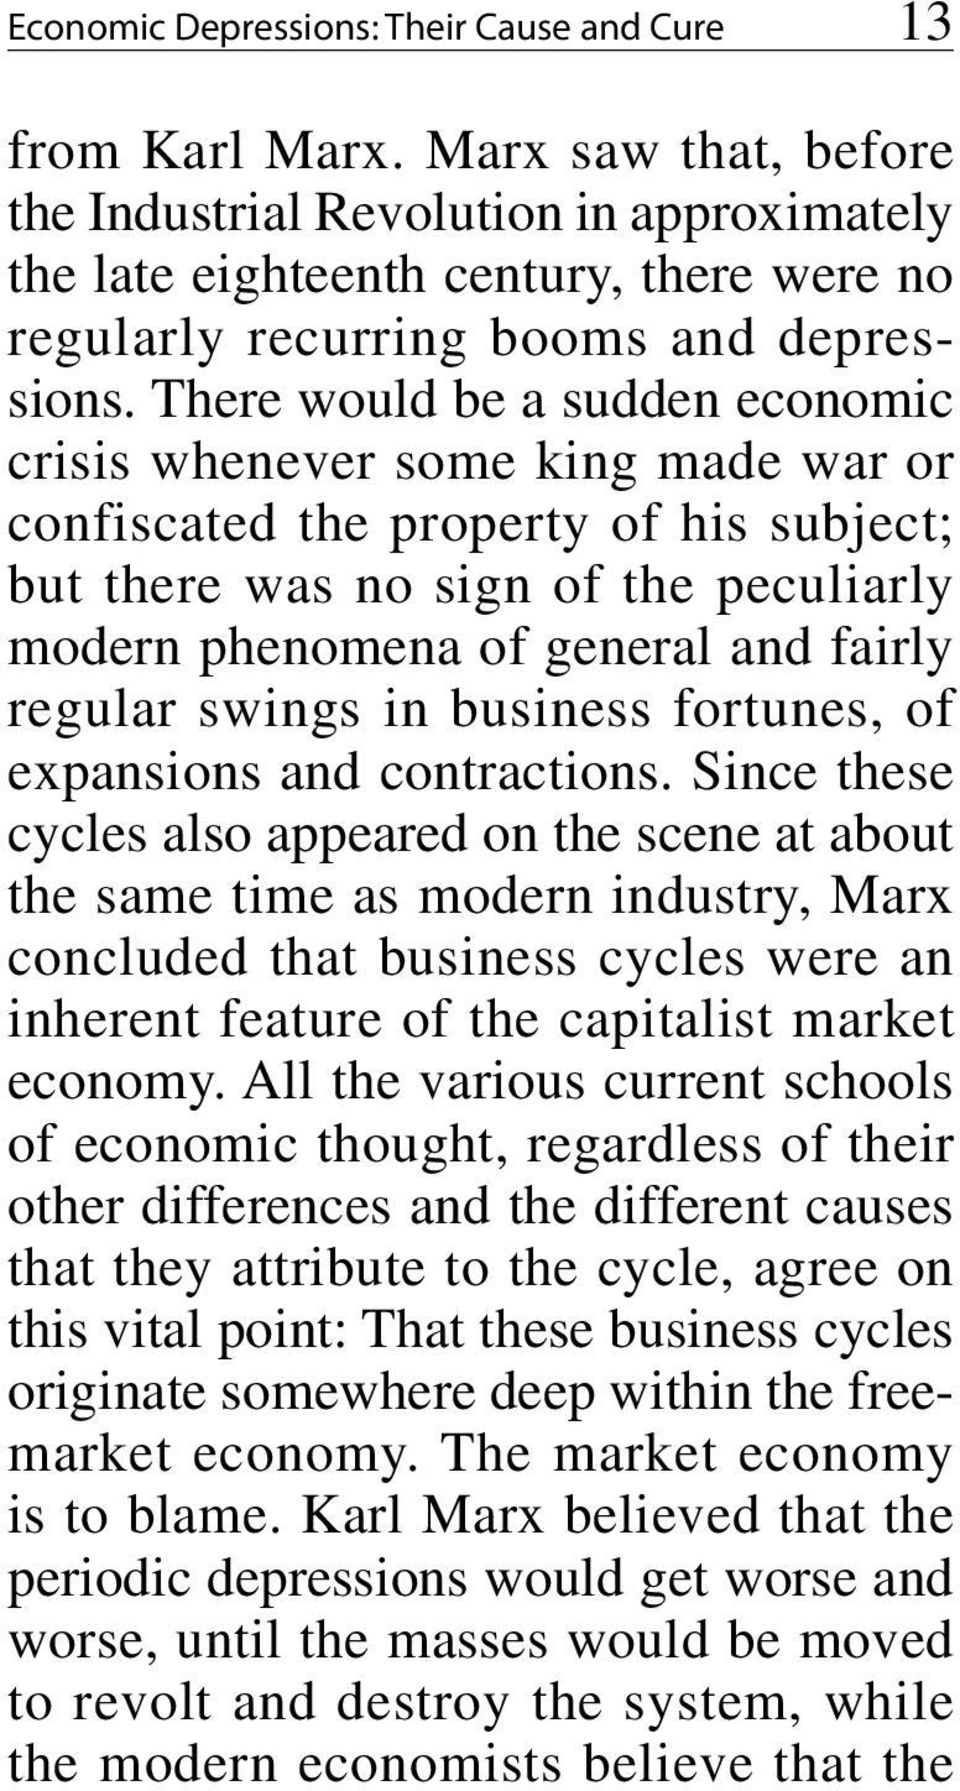 There would be a sudden economic crisis whenever some king made war or confiscated the property of his subject; but there was no sign of the peculiarly modern phenomena of general and fairly regular